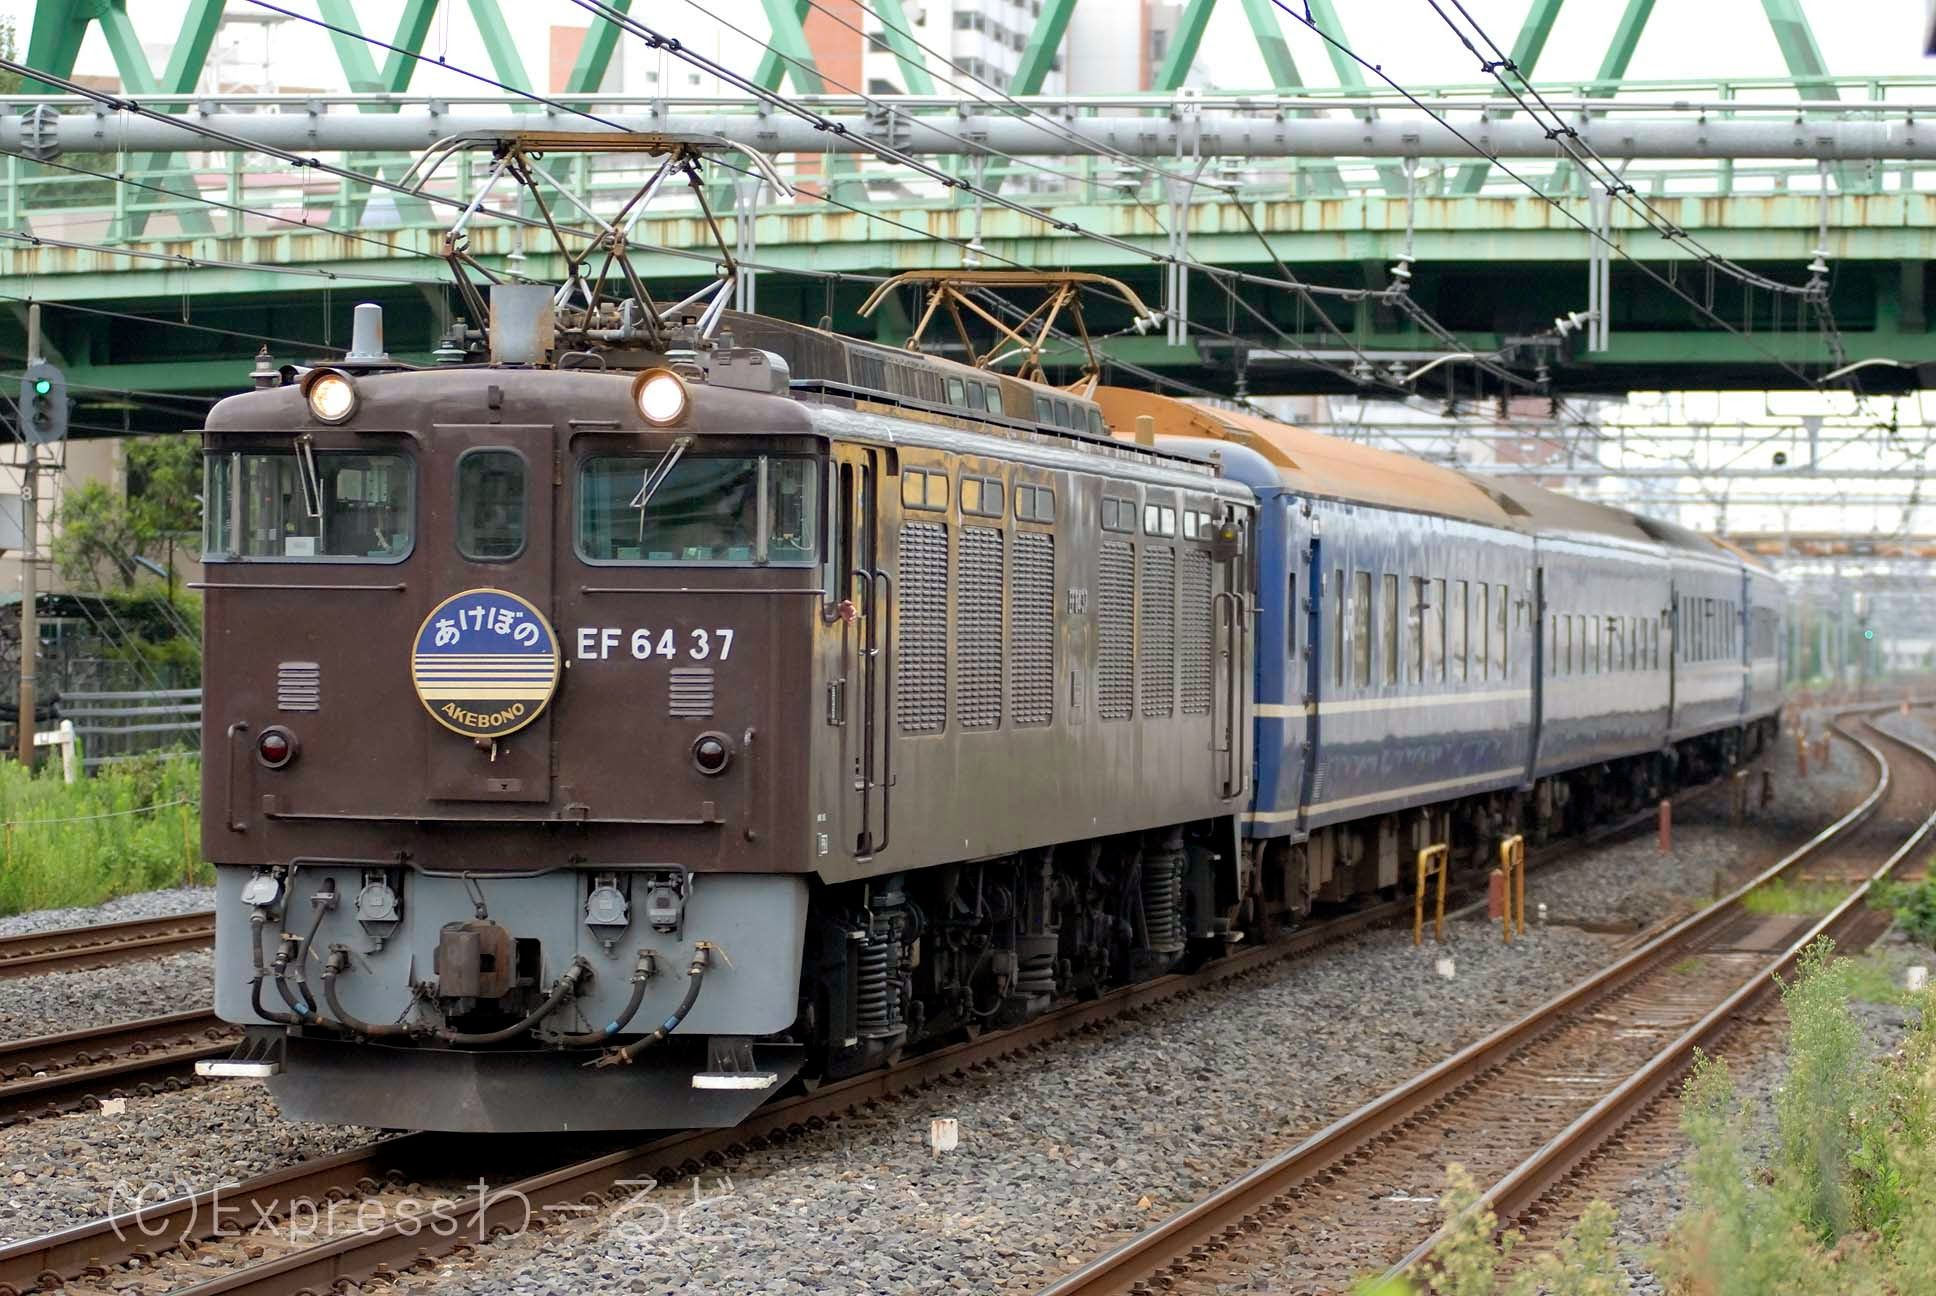 Pin by phyllis damon on trains pinterest locomotive and light rail electric locomotive blue train light rail track journey trains runway trucks the journey mozeypictures Choice Image